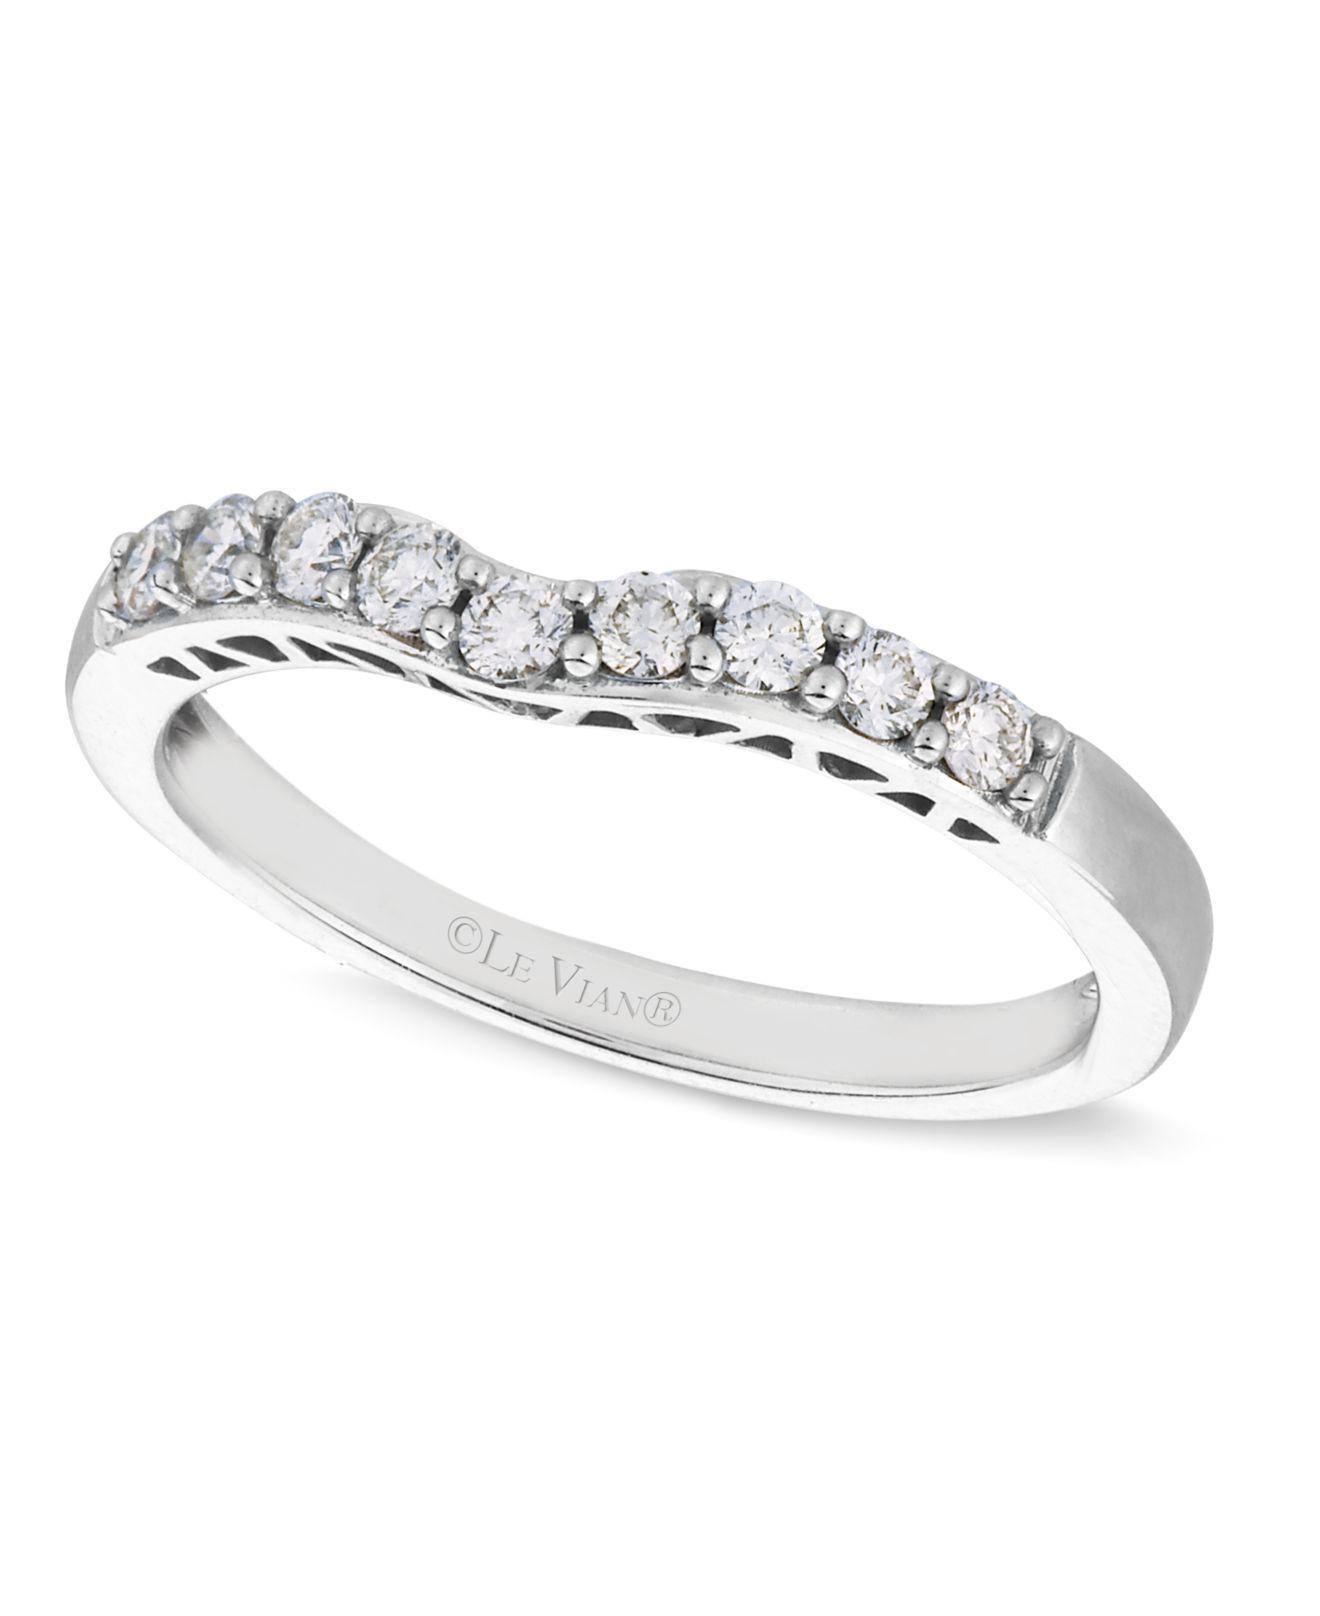 Le Vian Wedding Band 1/6 ct tw Diamonds 14K White Gold NTZULU